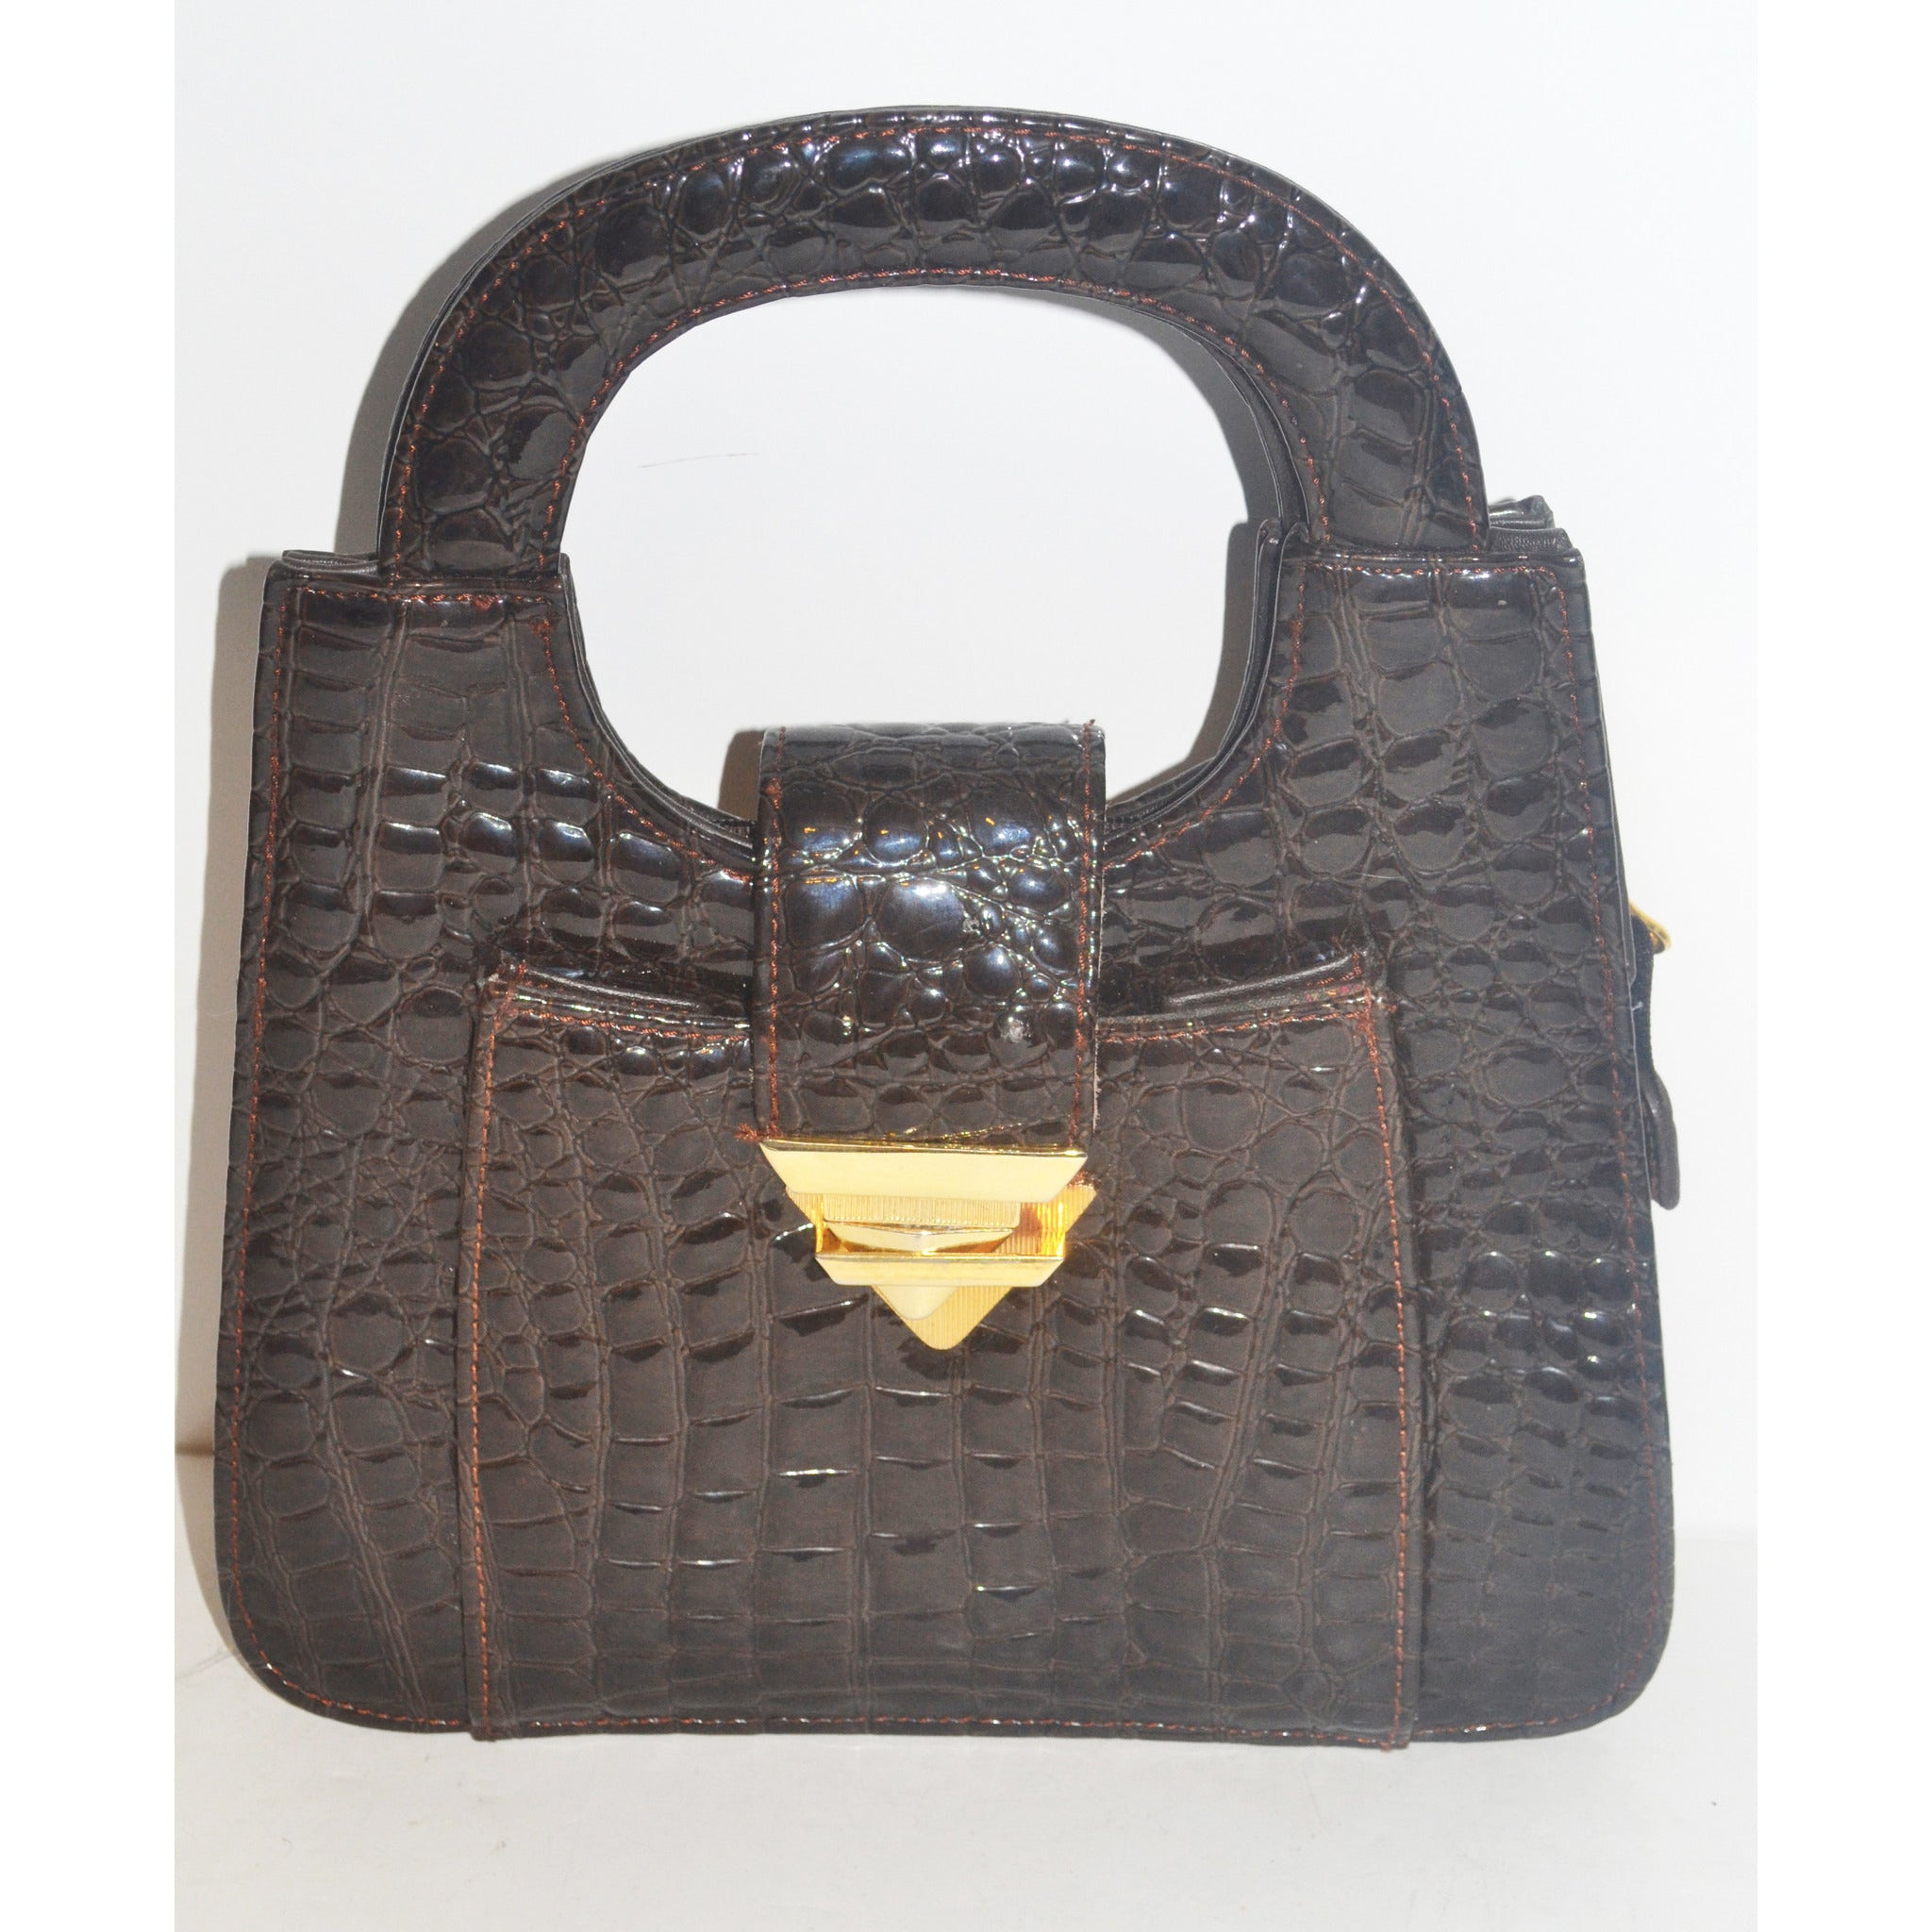 Vintage Brown High Gloss Embossed Handbag By Giovanni